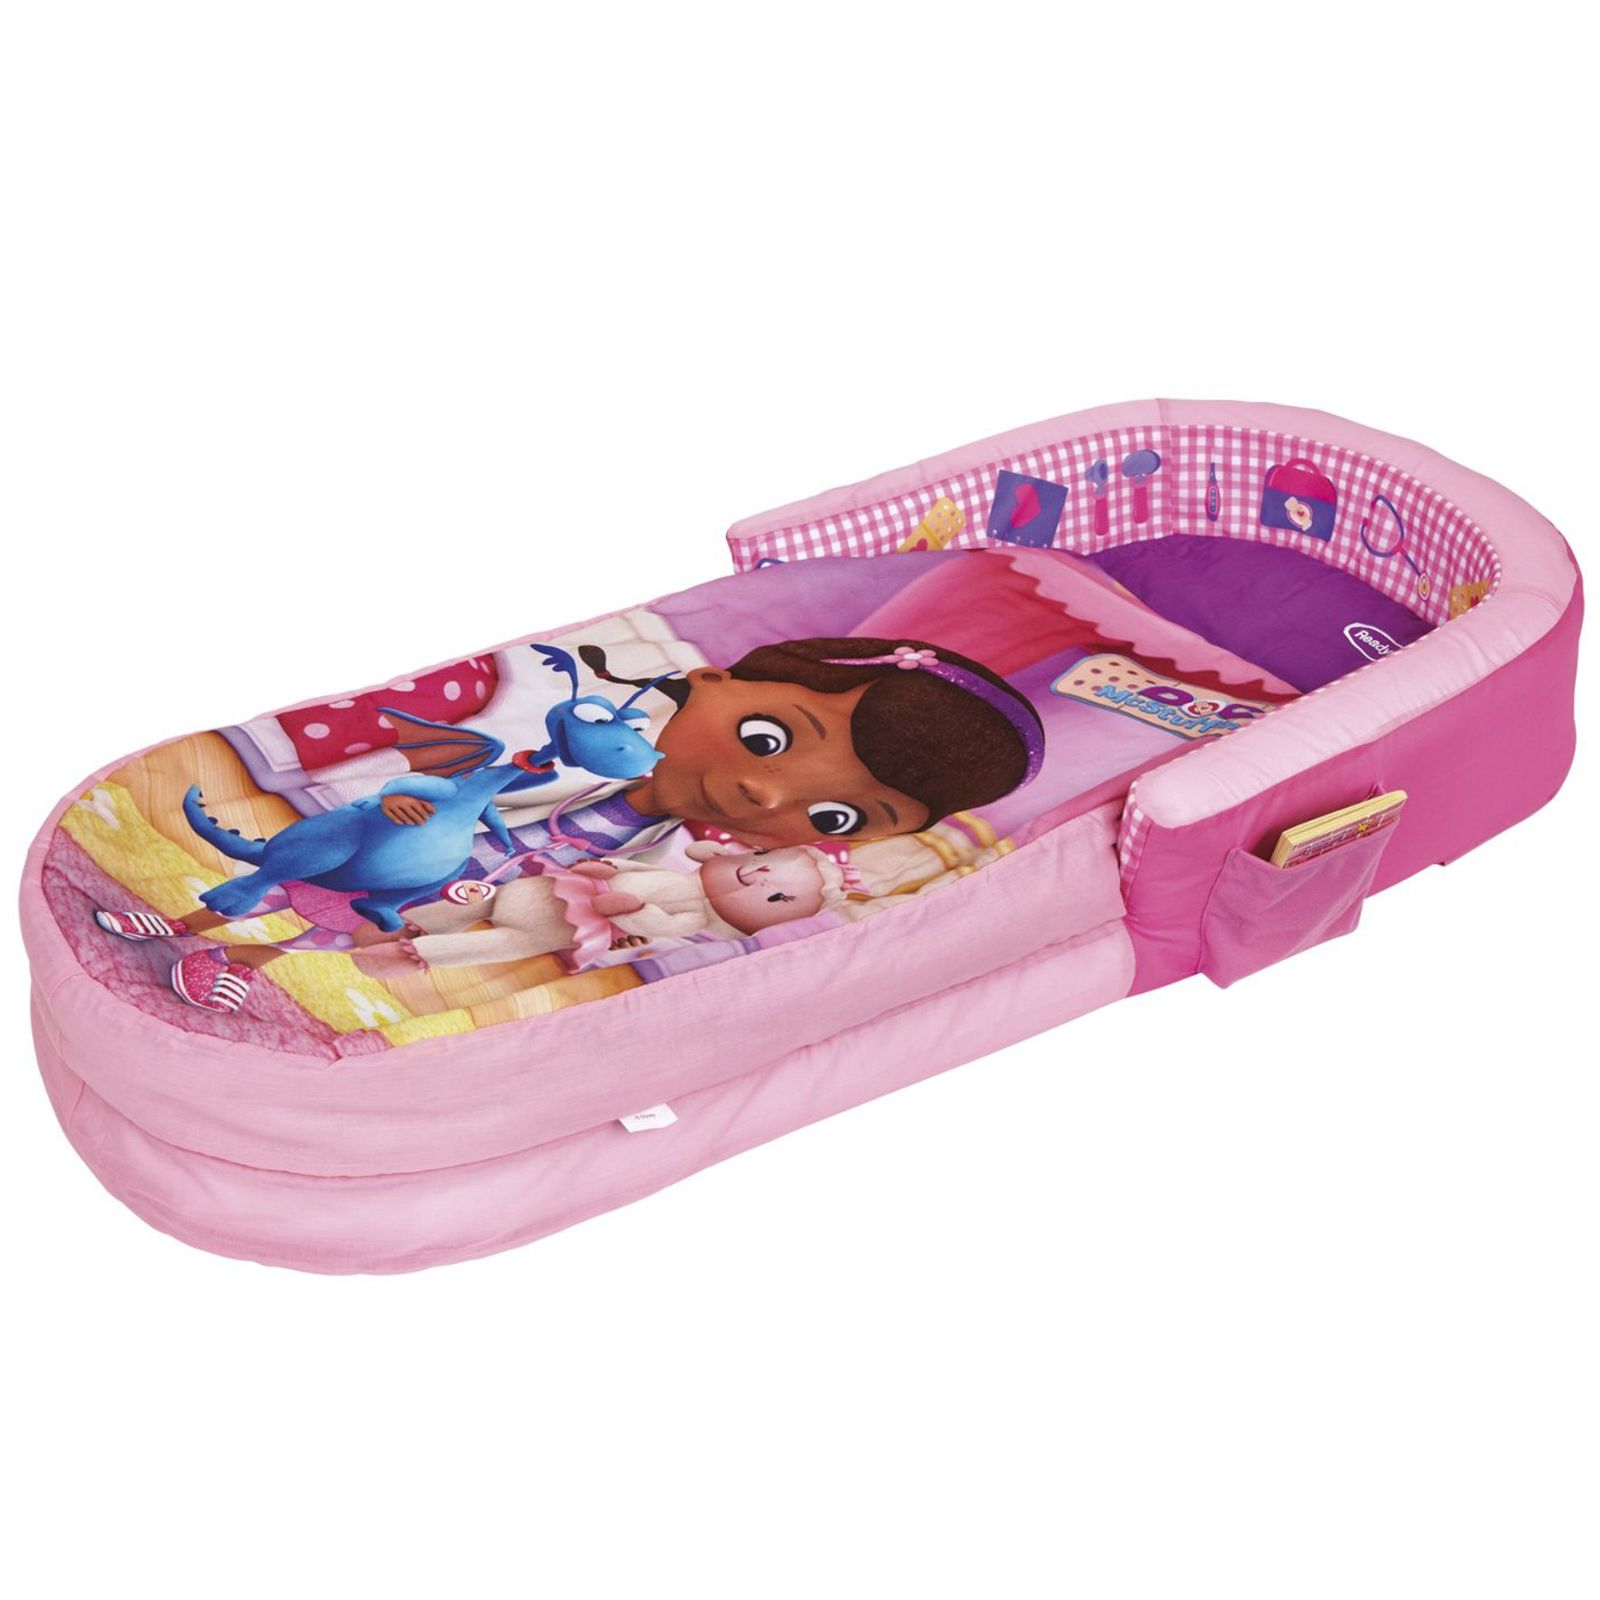 Doc mcstuffins sleeping bag abc party ideas for girls